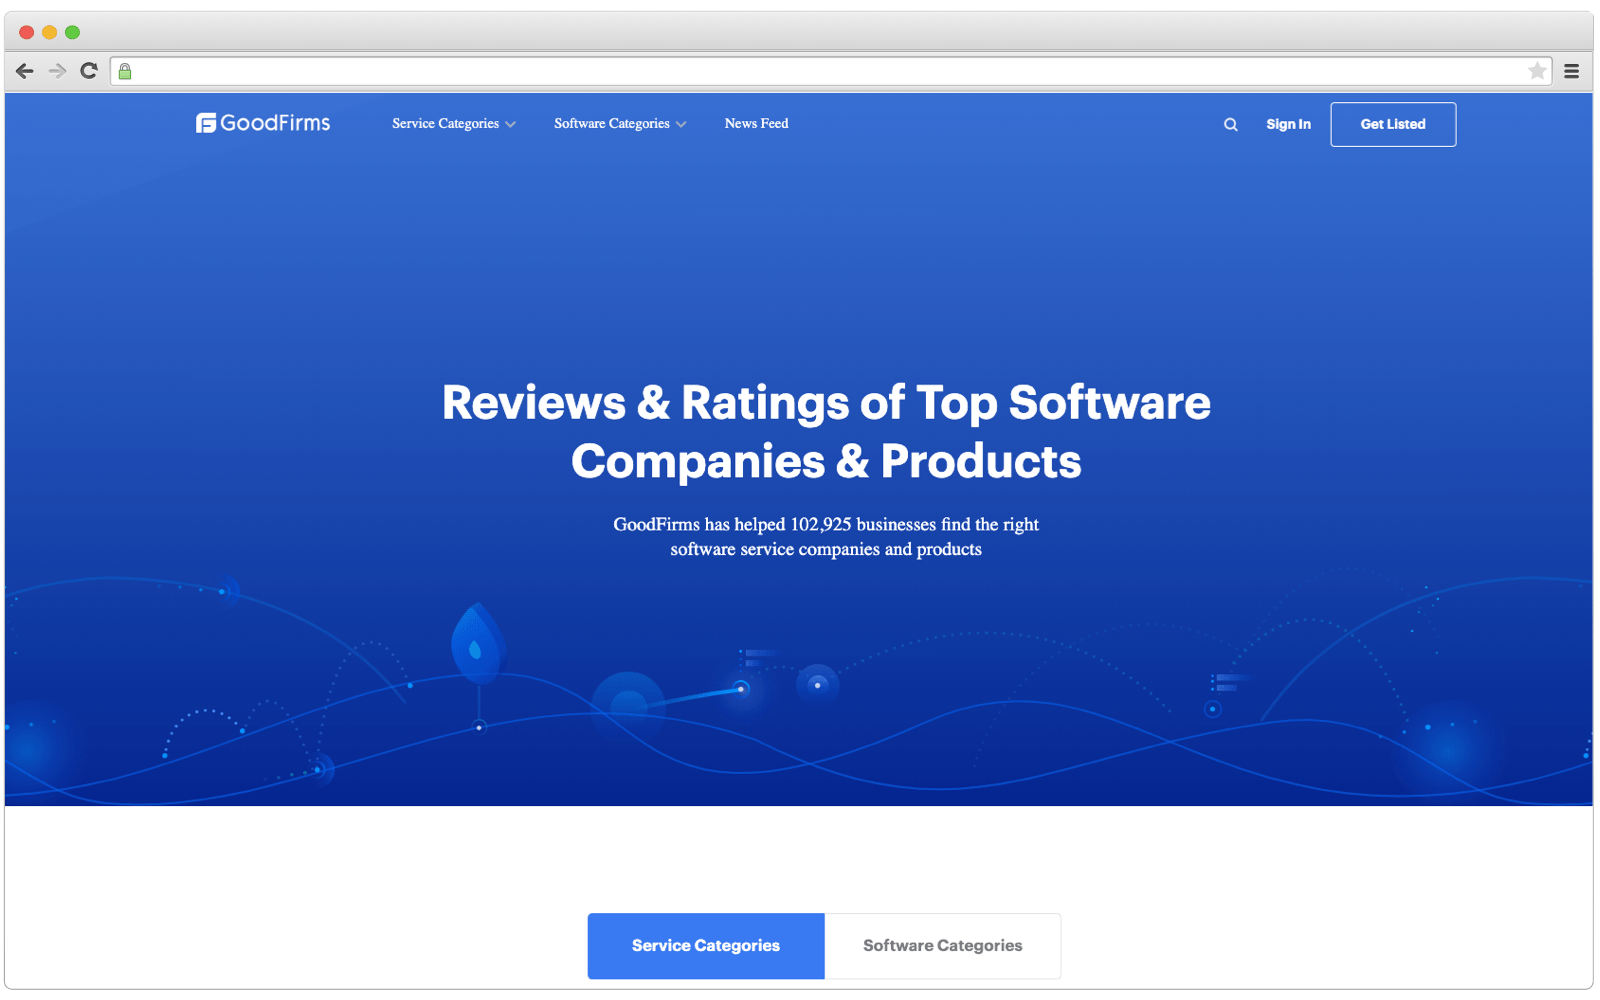 GoodFirms is one of the best outsourcing platforms